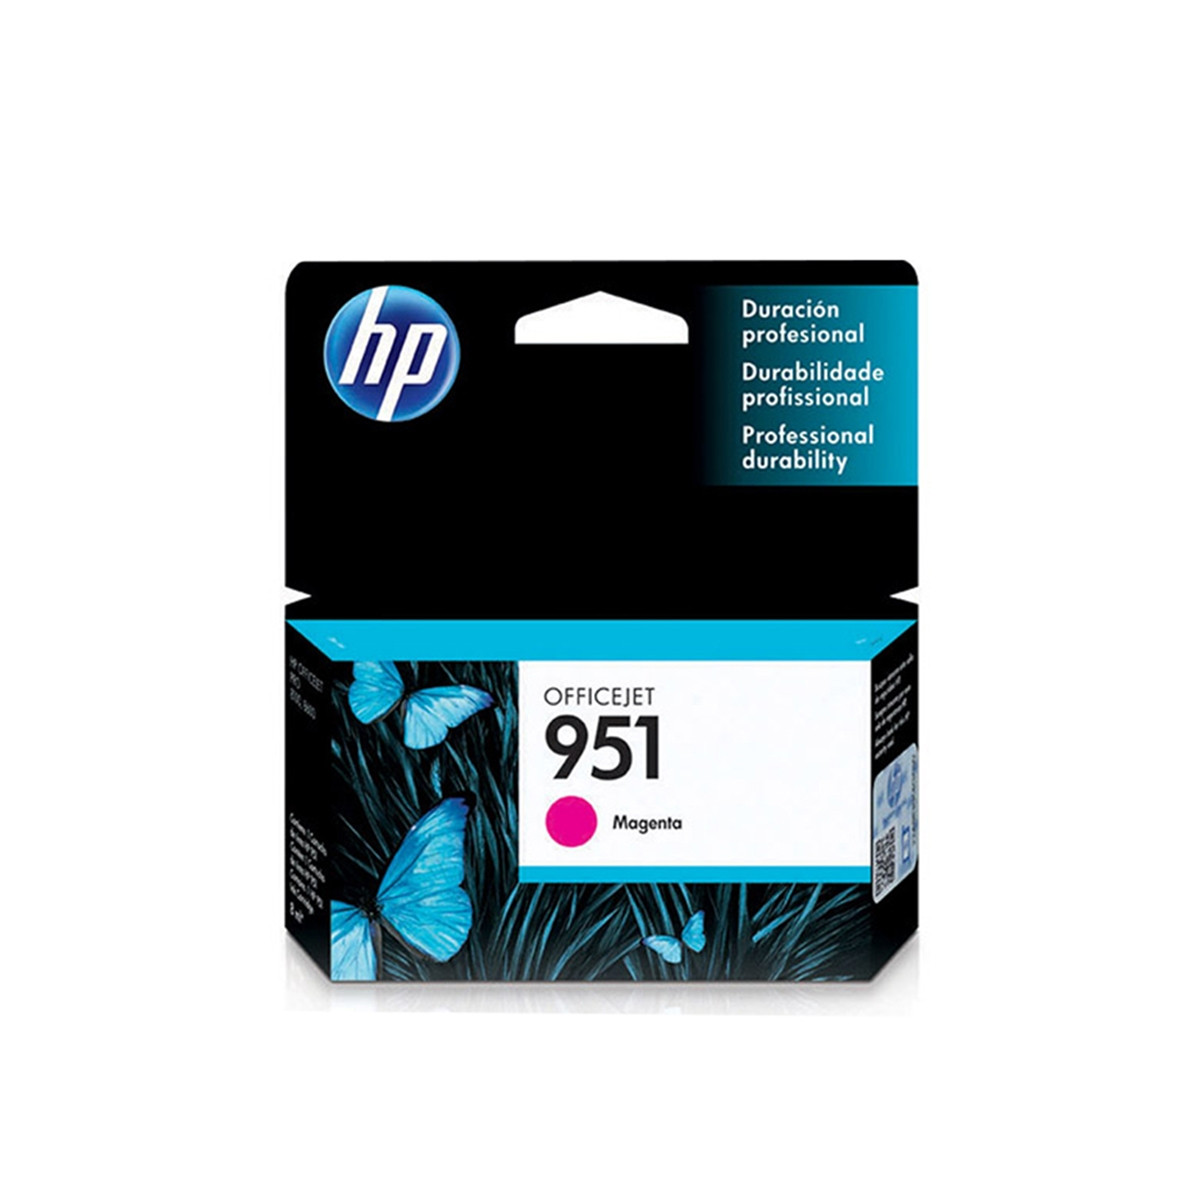 Cartucho de Tinta HP 951 CN051AL CN051AB Magenta | 8610 8620 8100 8600 Plus 8630 | Original 8ml